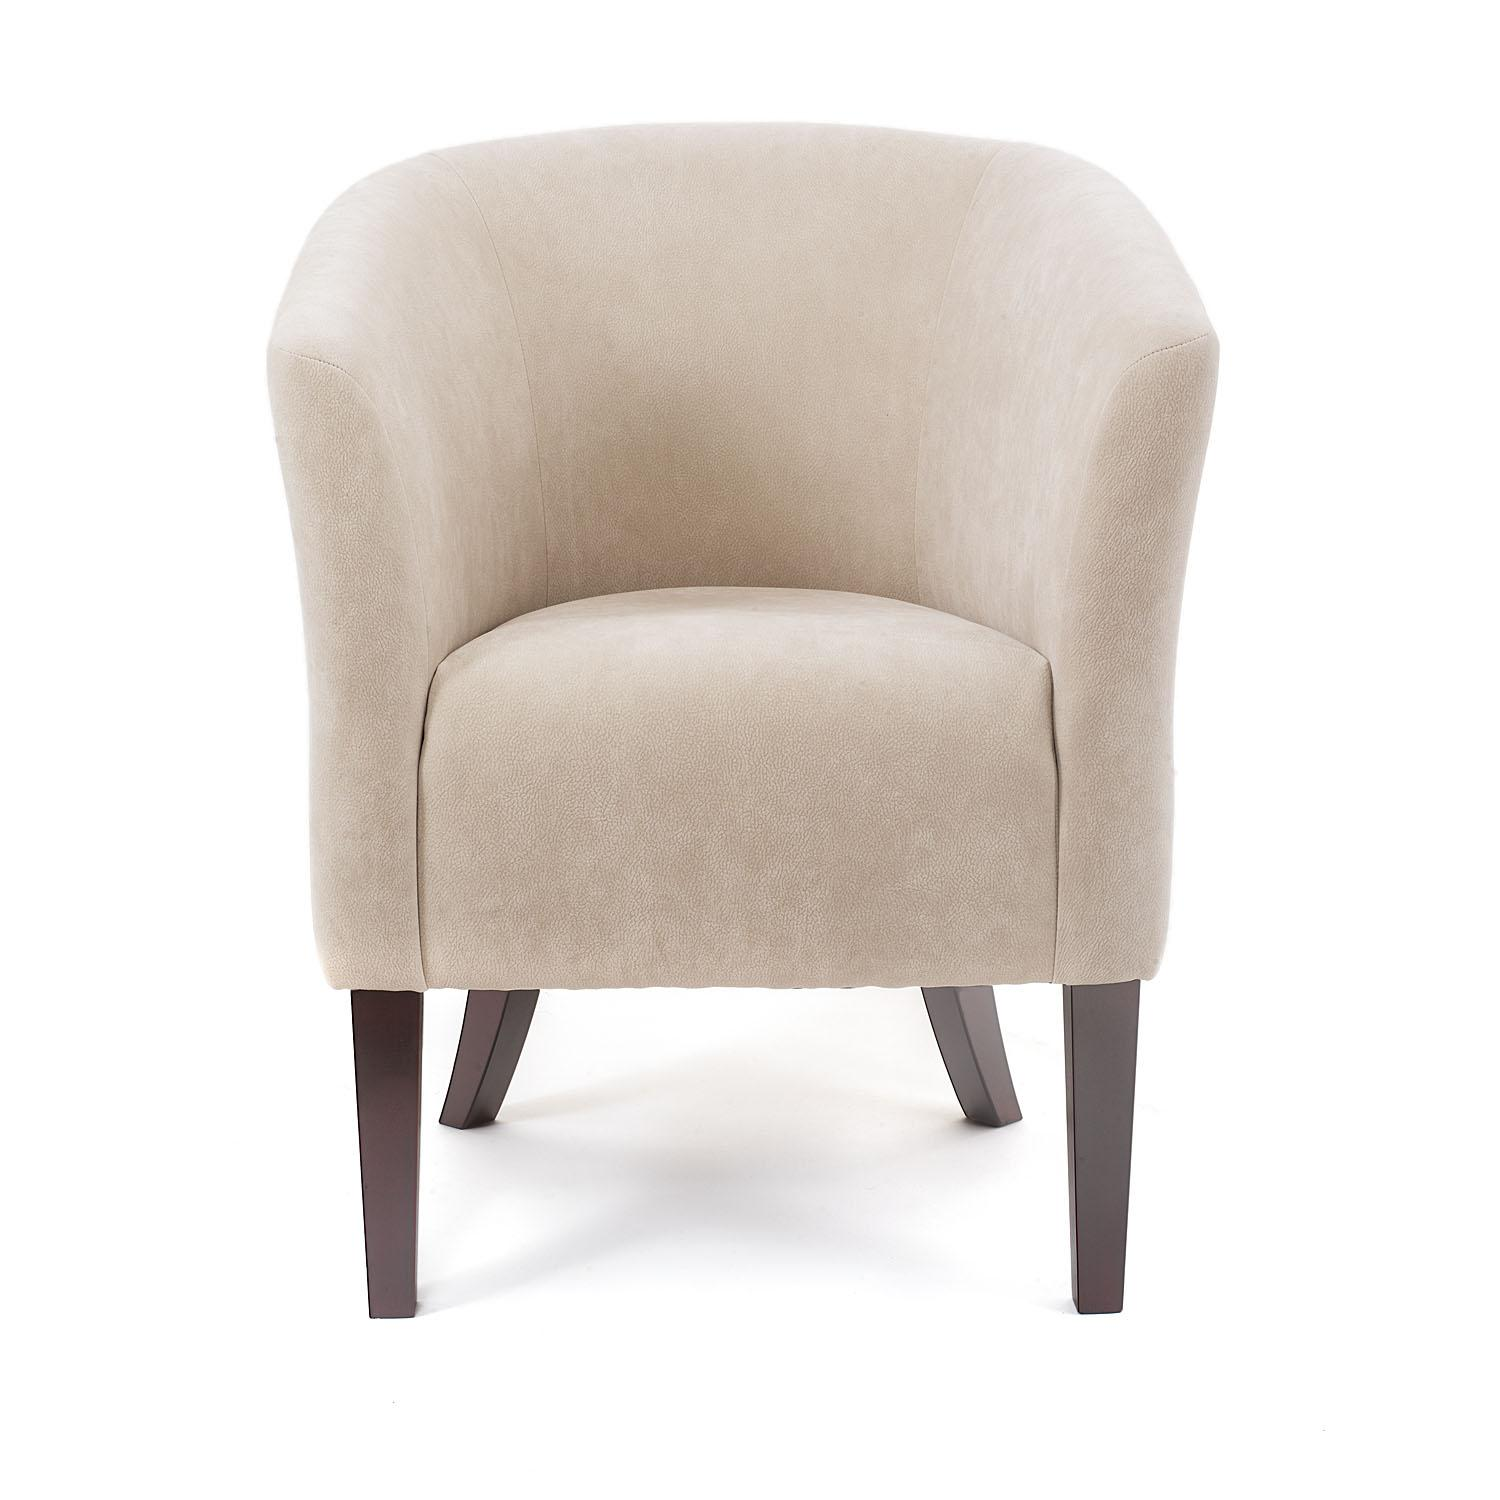 A picture containing seat, furniture, floor, chair  Description automatically generated